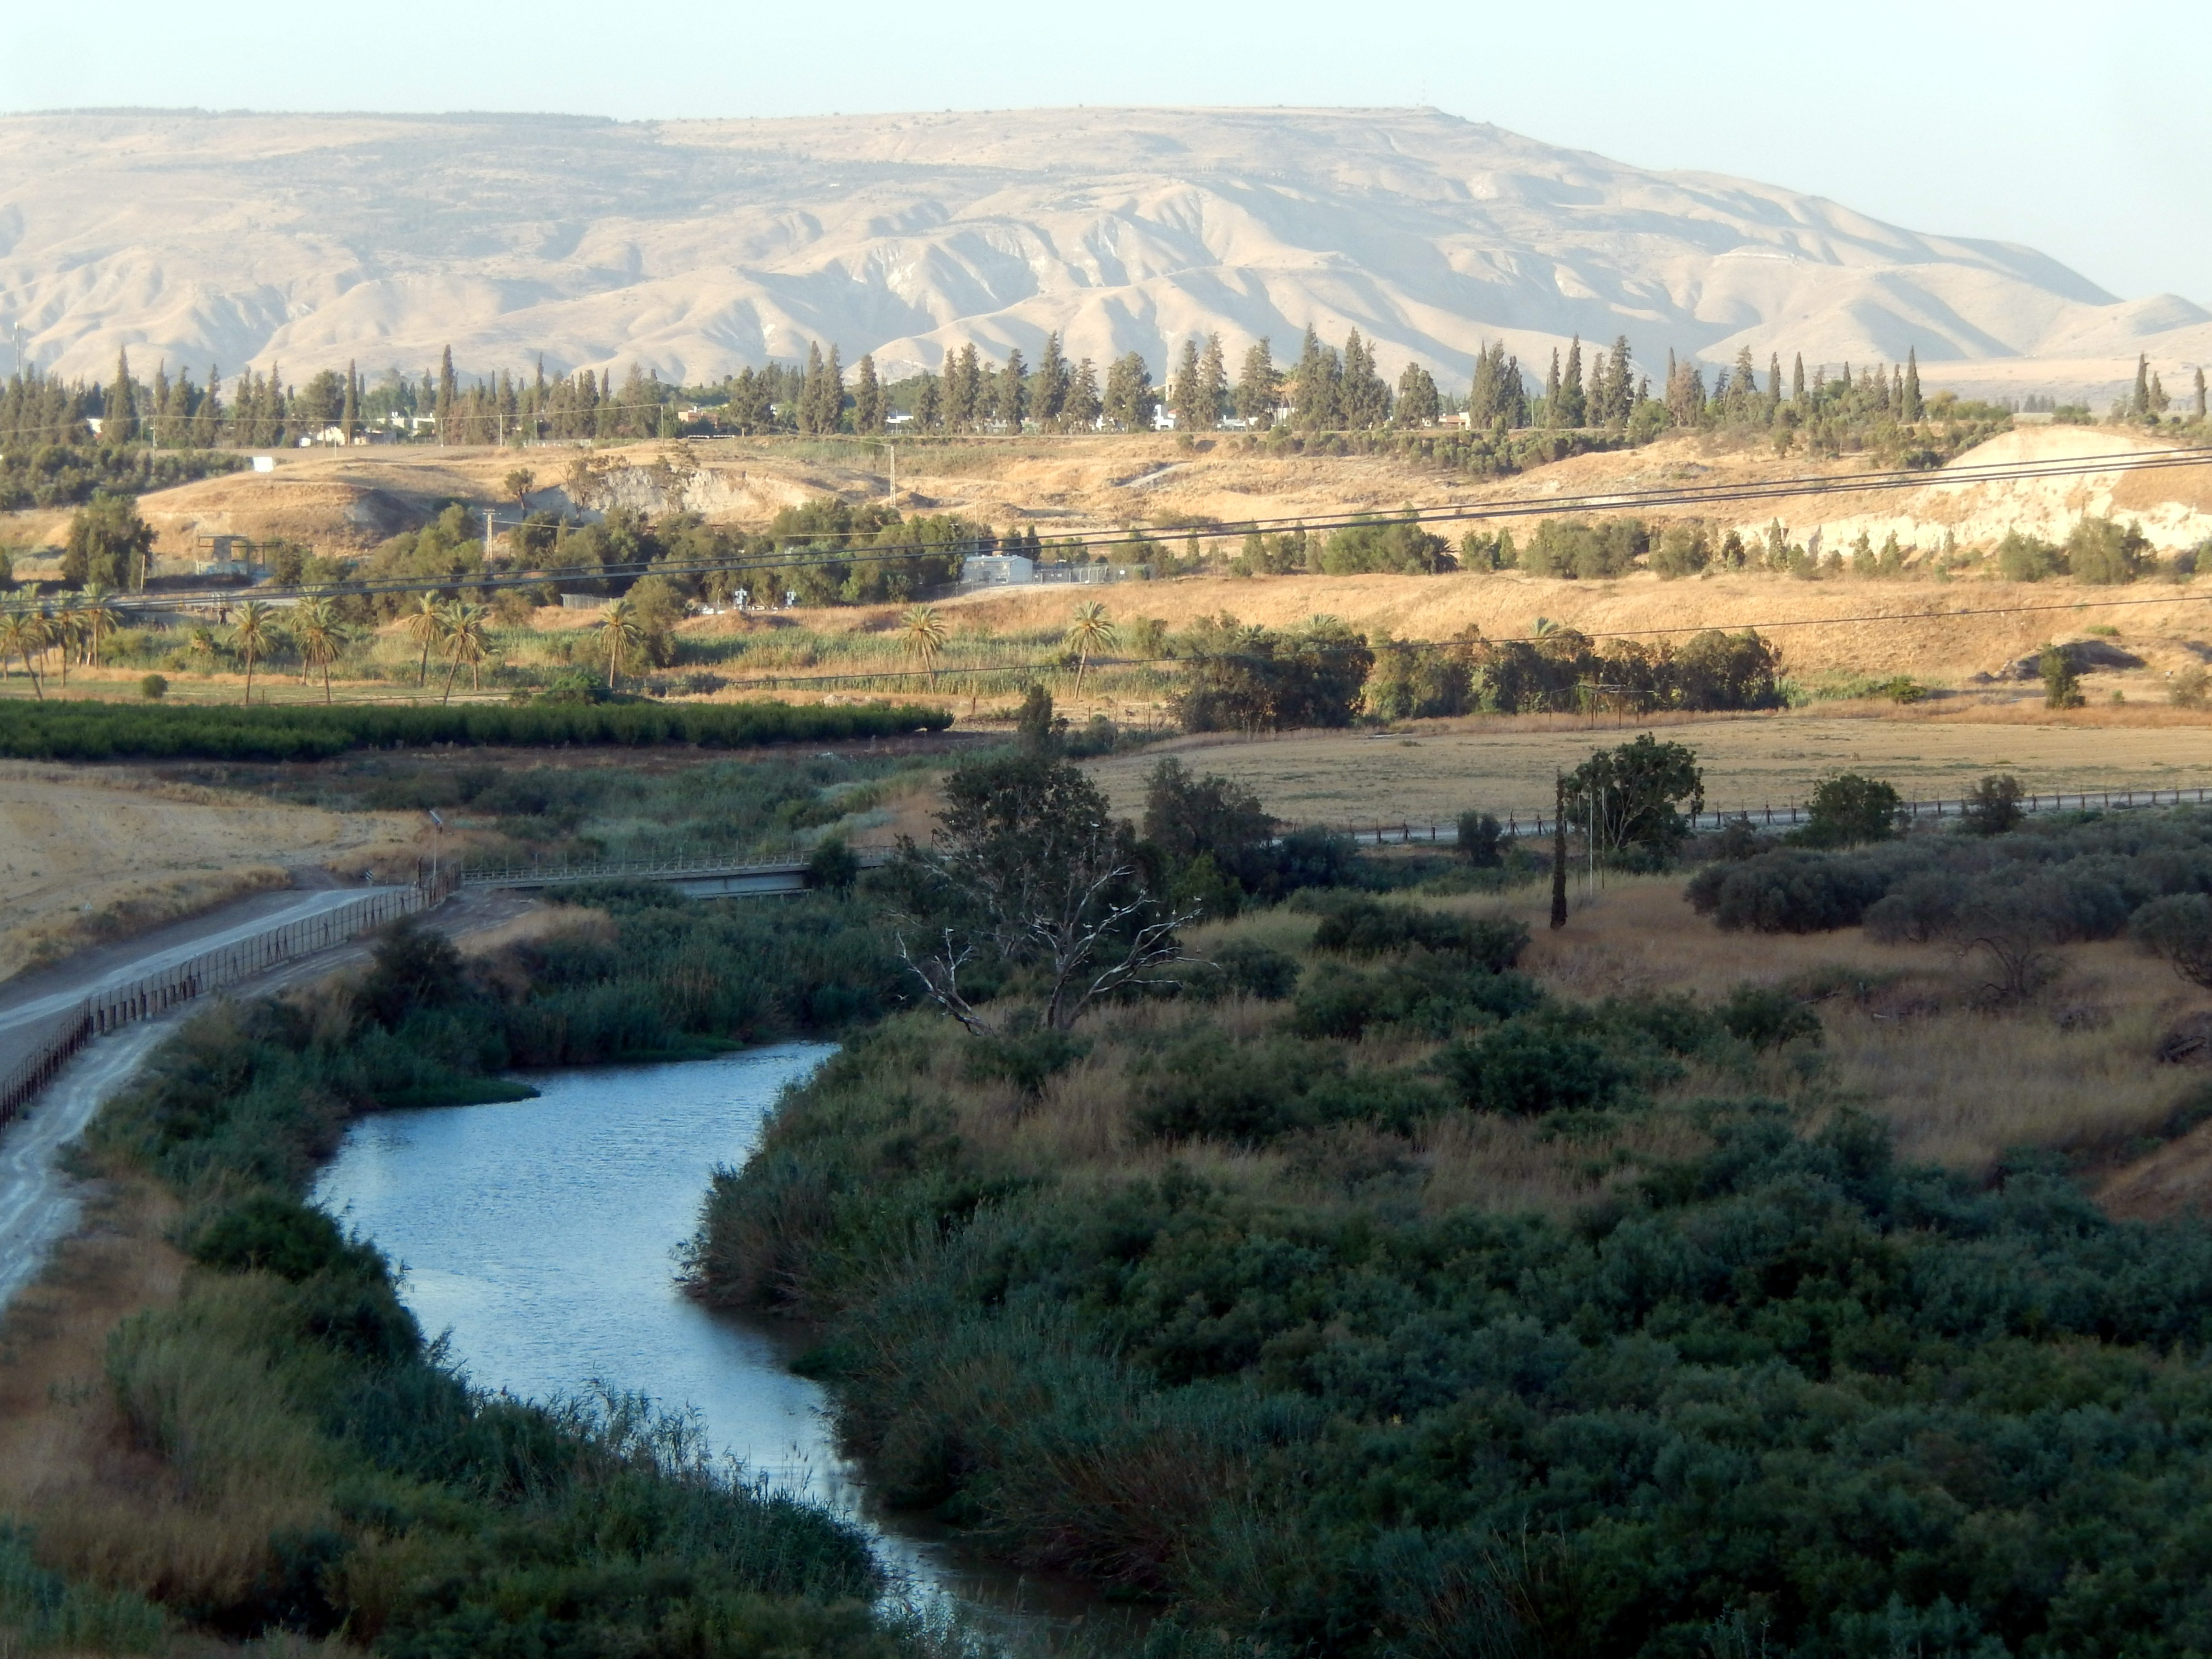 The Jordan river and in the background, the Gilead mountains in Jordan